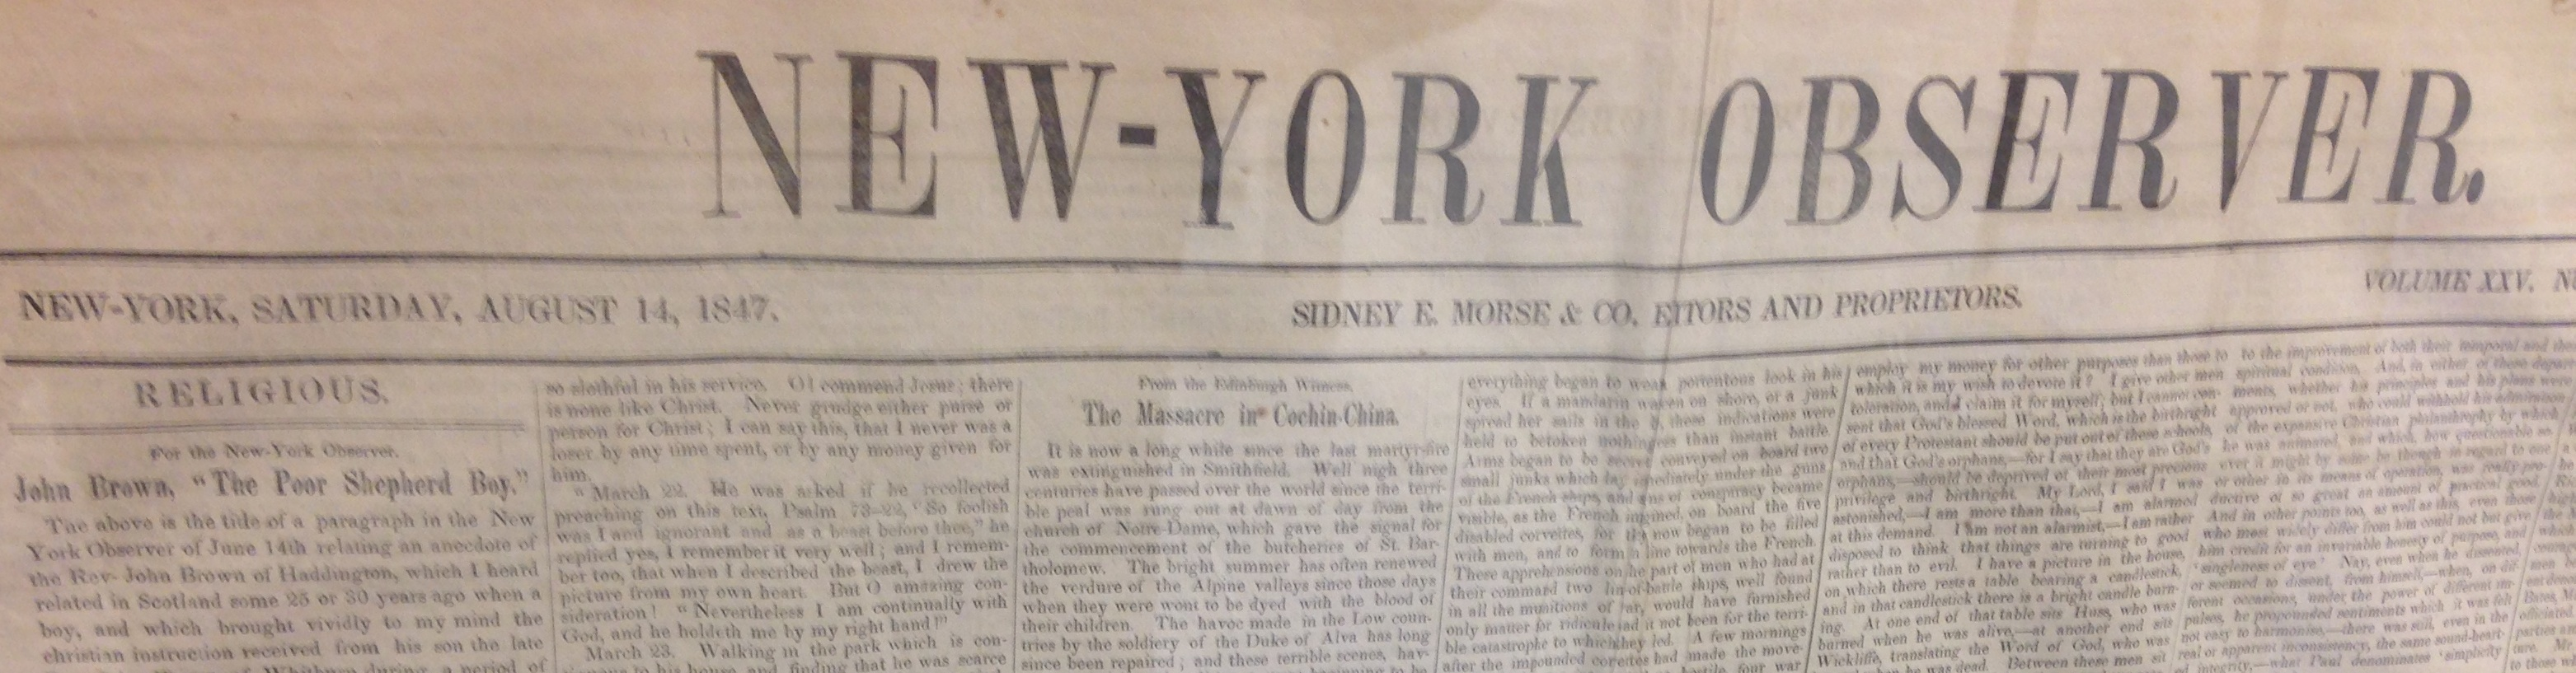 Abraham Lincoln was serving his sole term in Congress back in August 1847. Newspapers, like the New-York Observer were different then. Or were they?